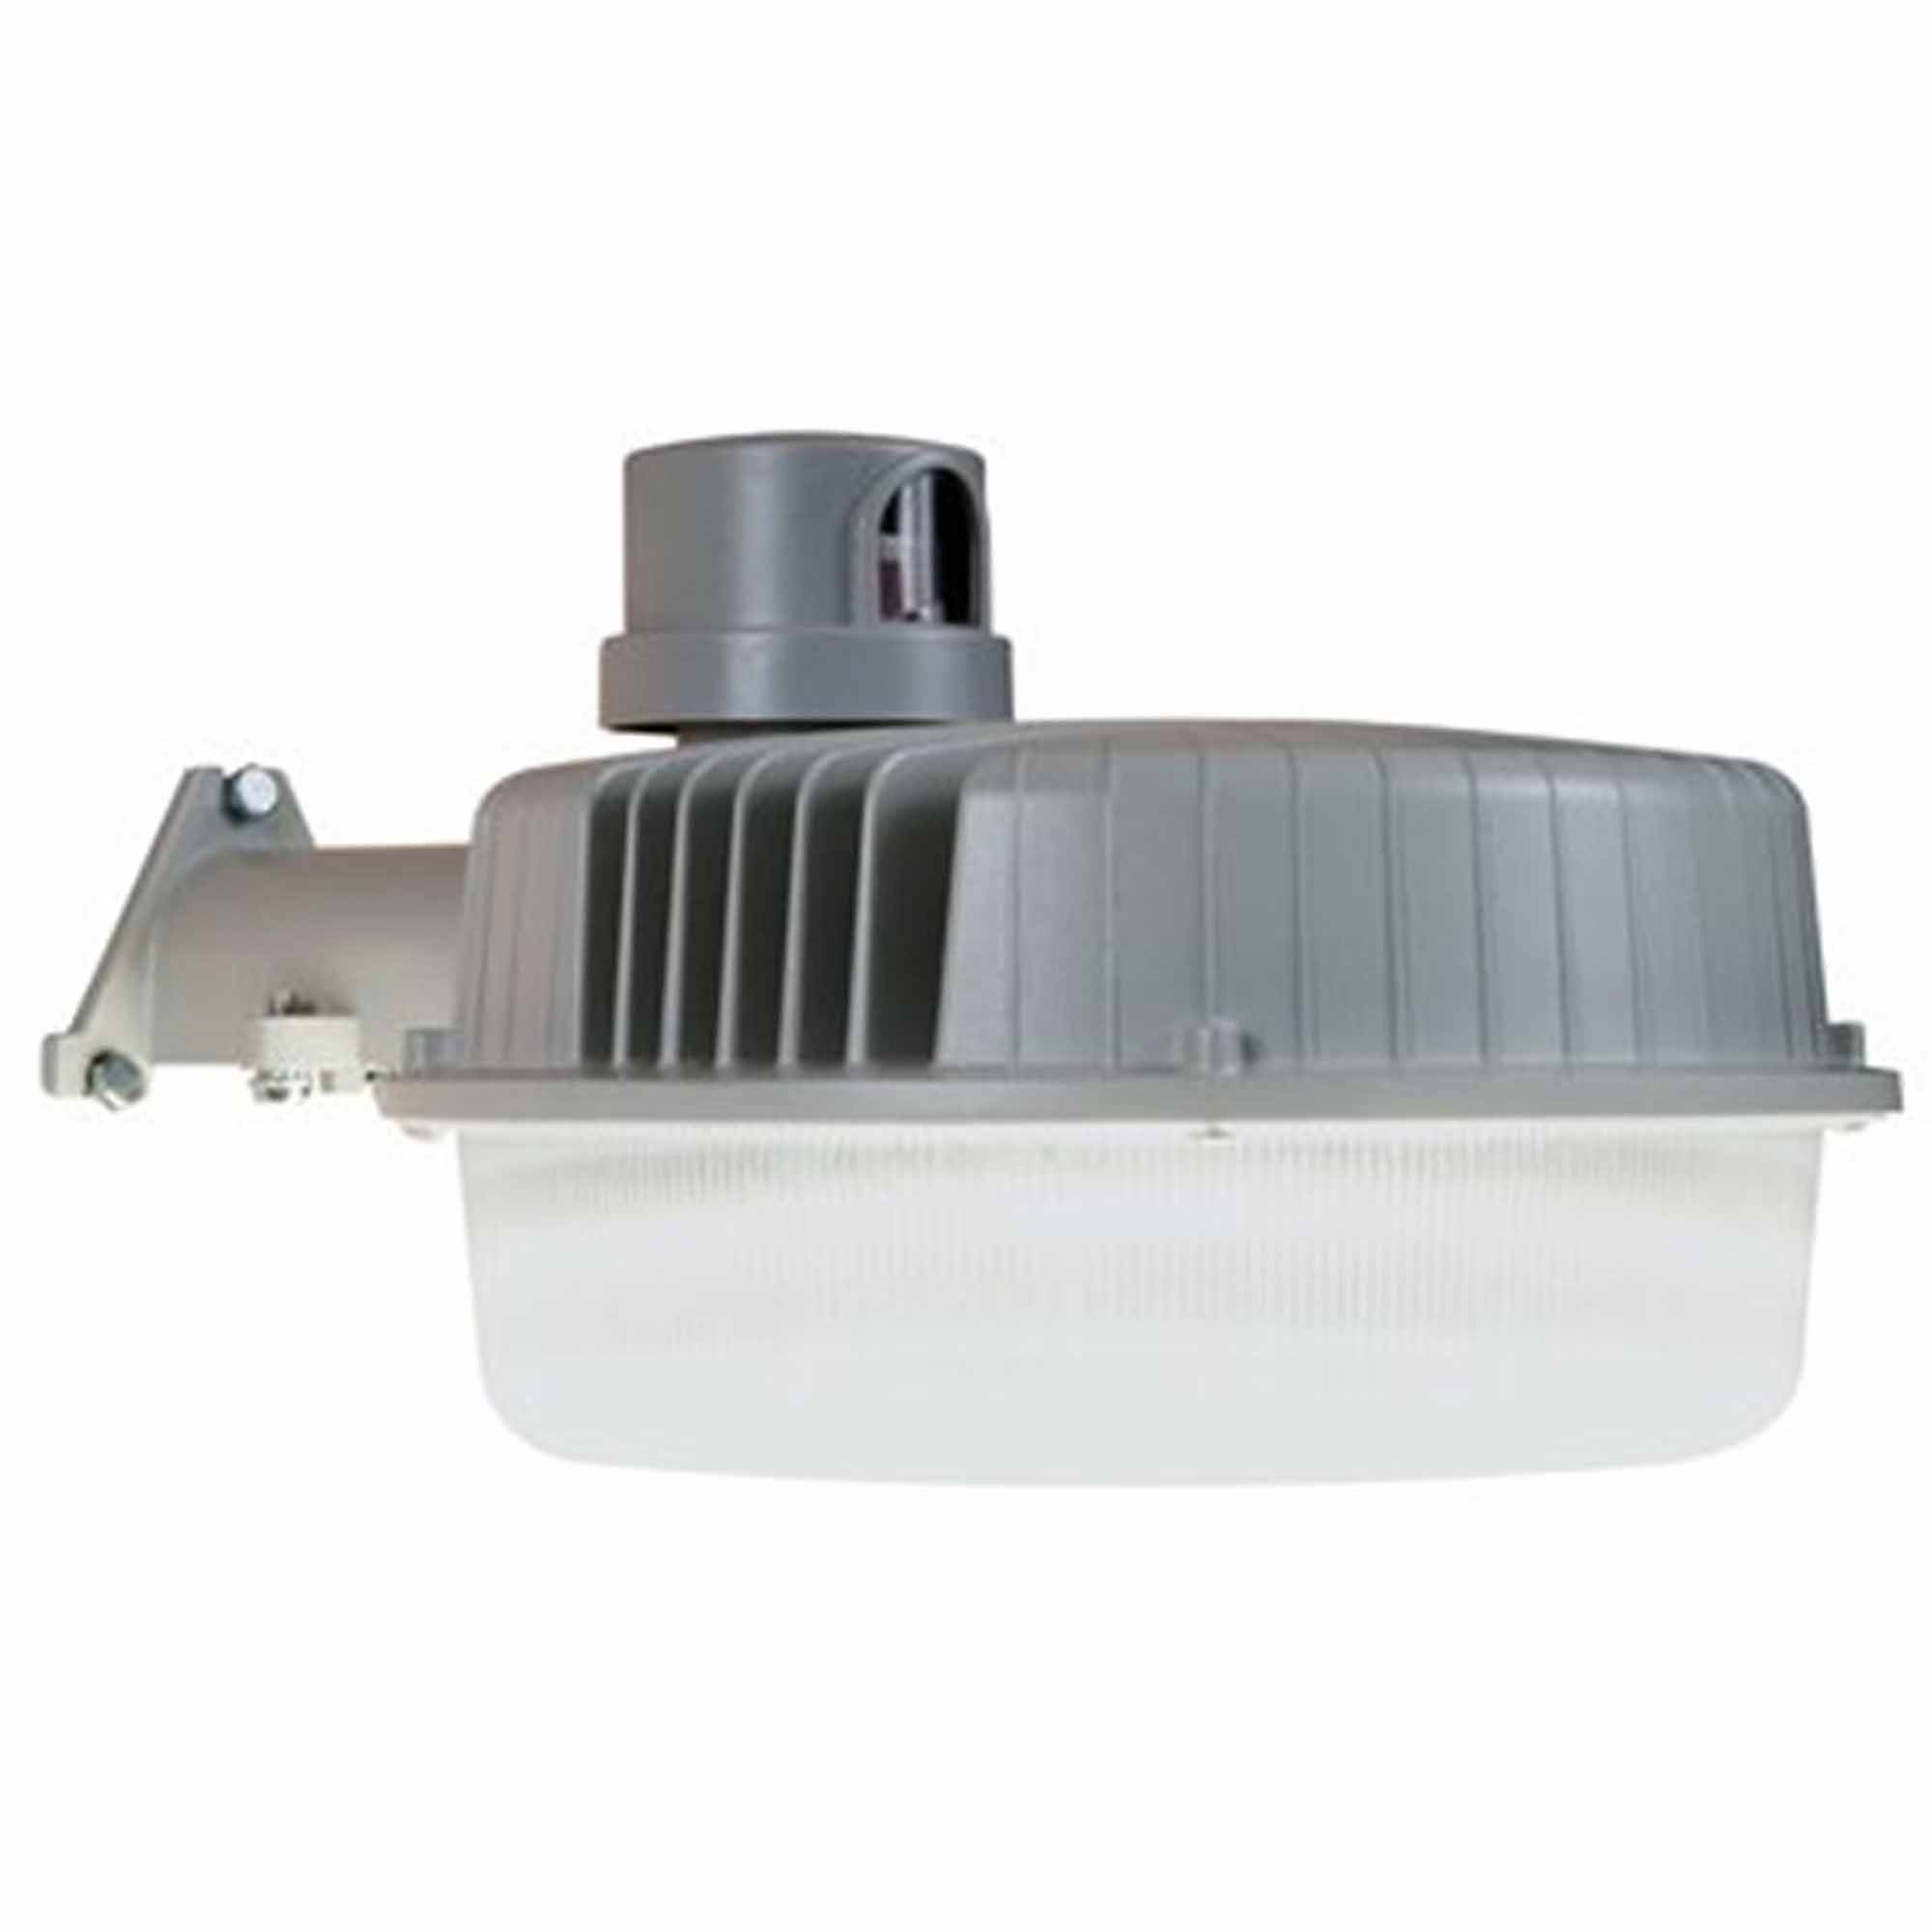 All Pro Outdoor Security 2500-Lumen Dusk-to-Dawn LED Area and Wall Light - Walmart.com  sc 1 st  Walmart & All Pro Outdoor Security 2500-Lumen Dusk-to-Dawn LED Area and Wall ... azcodes.com